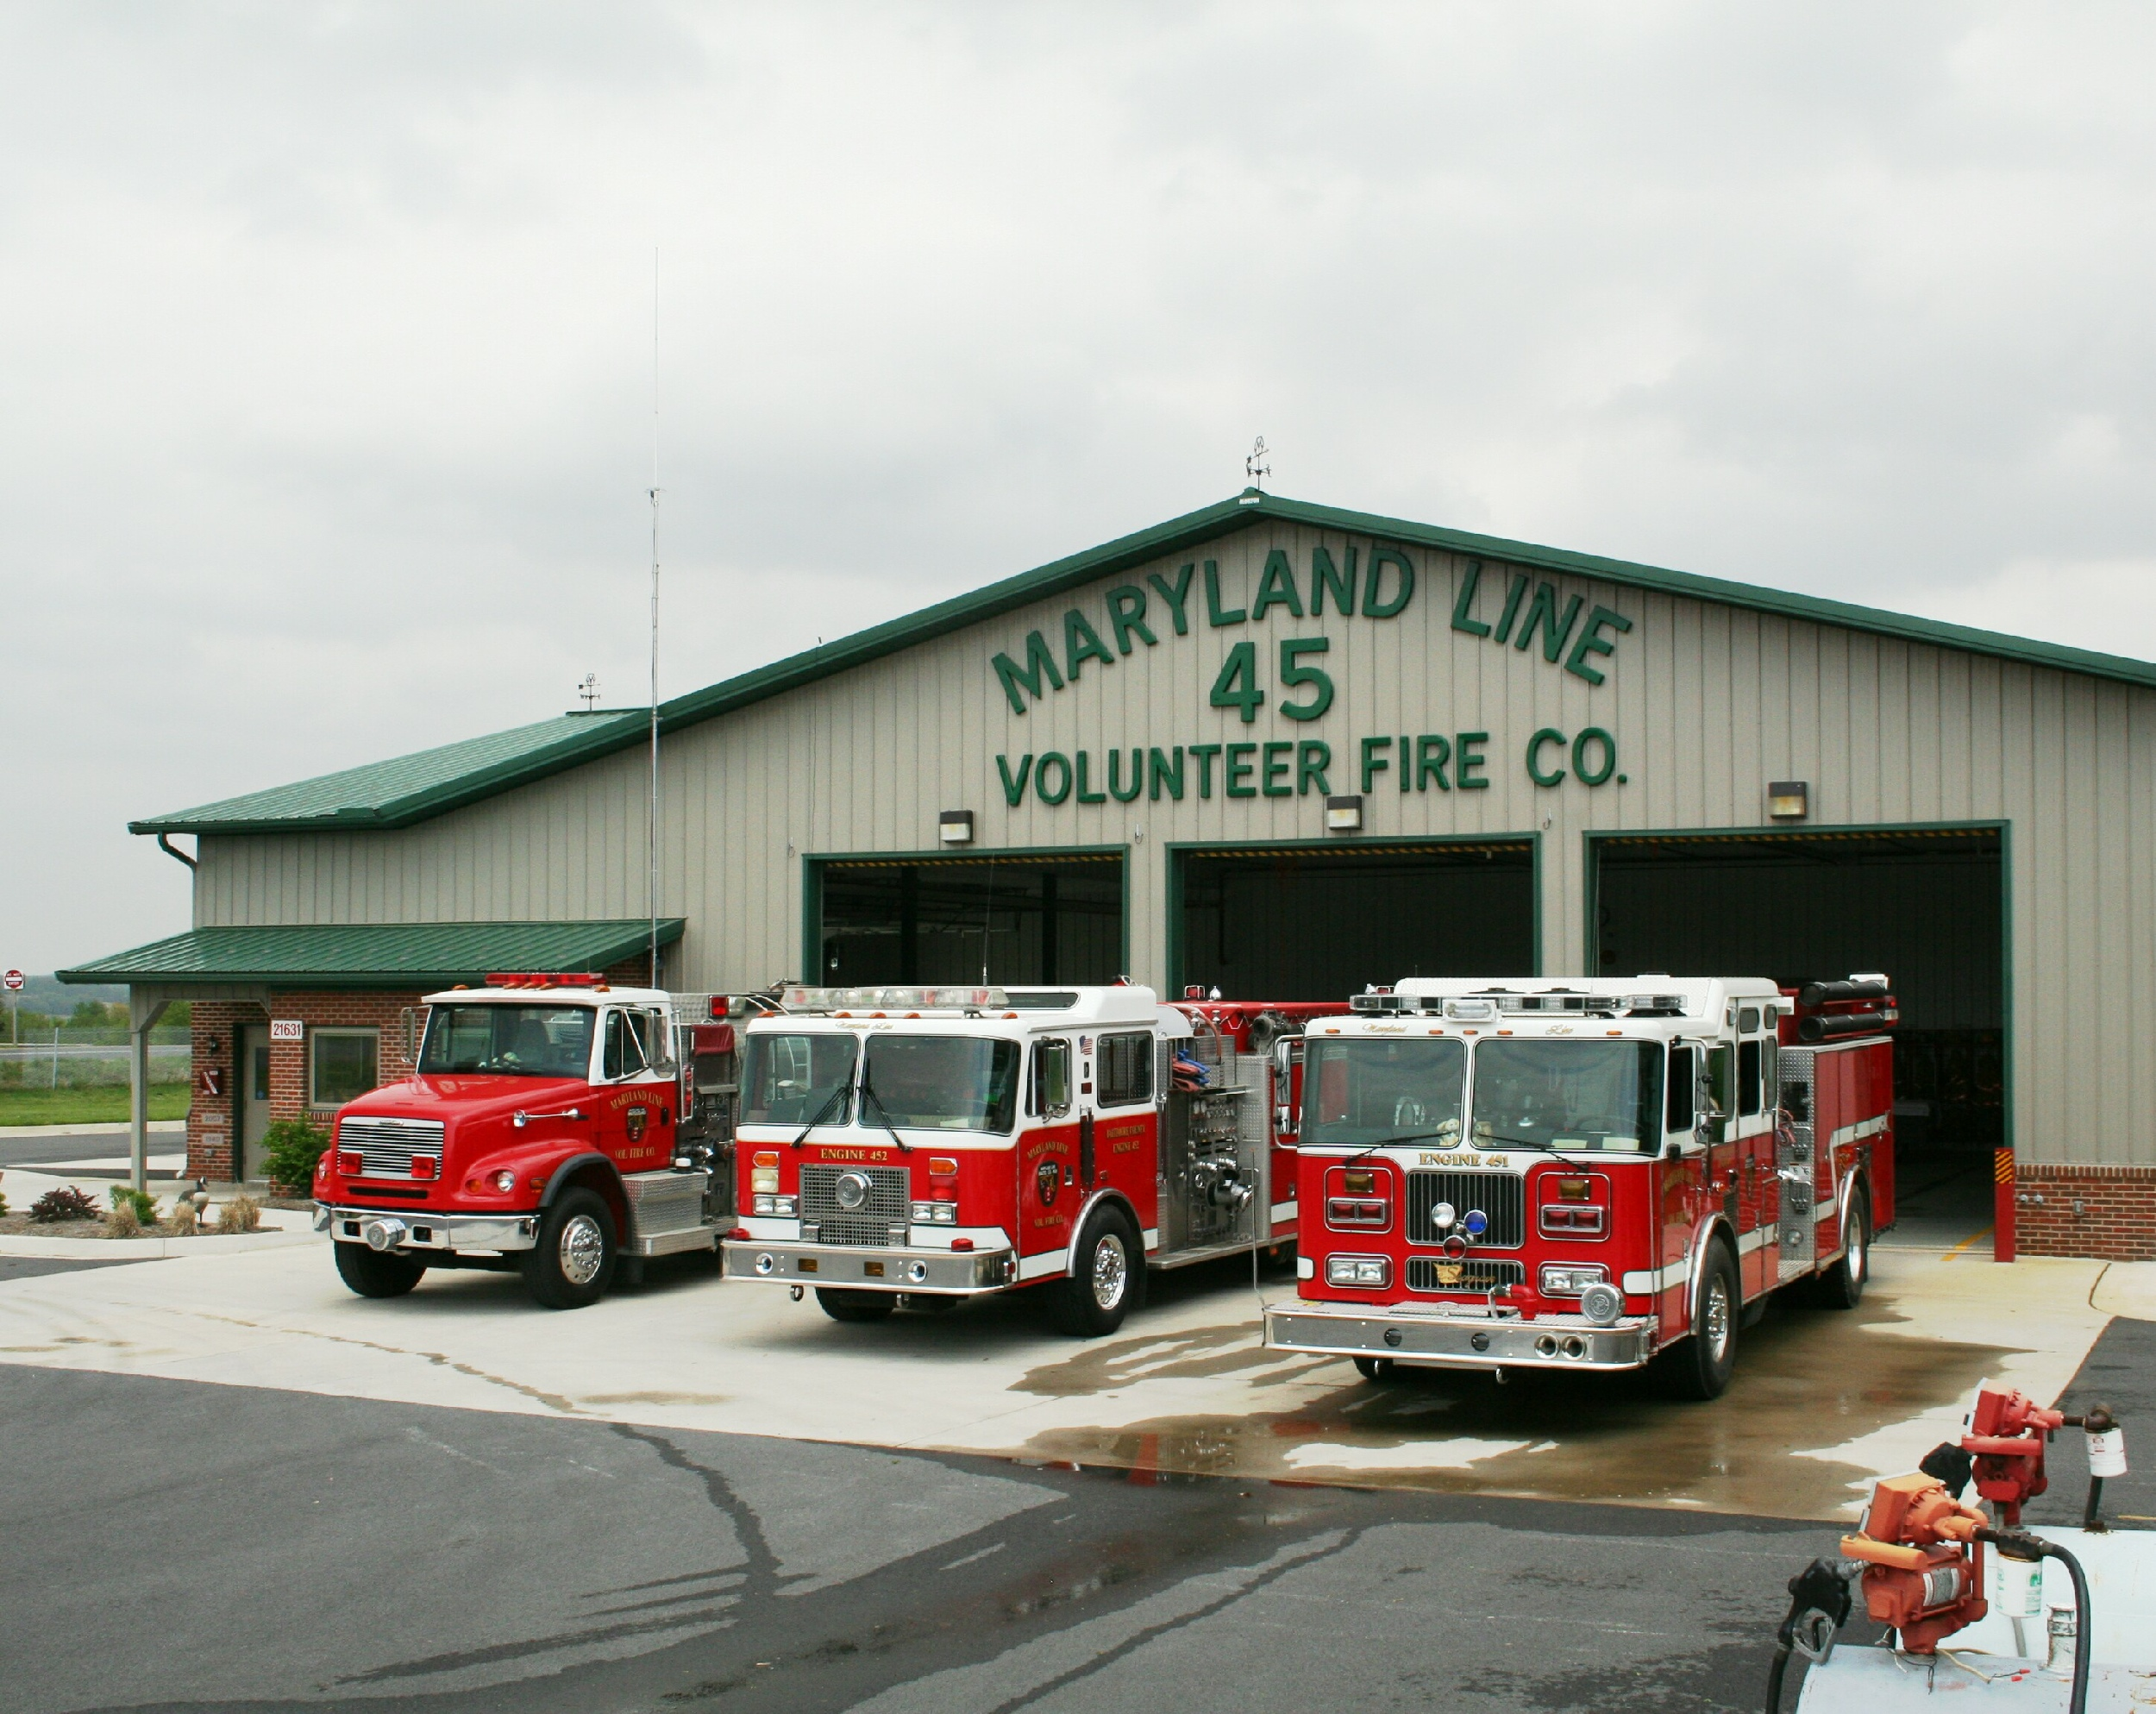 2003 Dodge Ram 1500 >> MD, Maryland Line Volunteer Fire Company 45